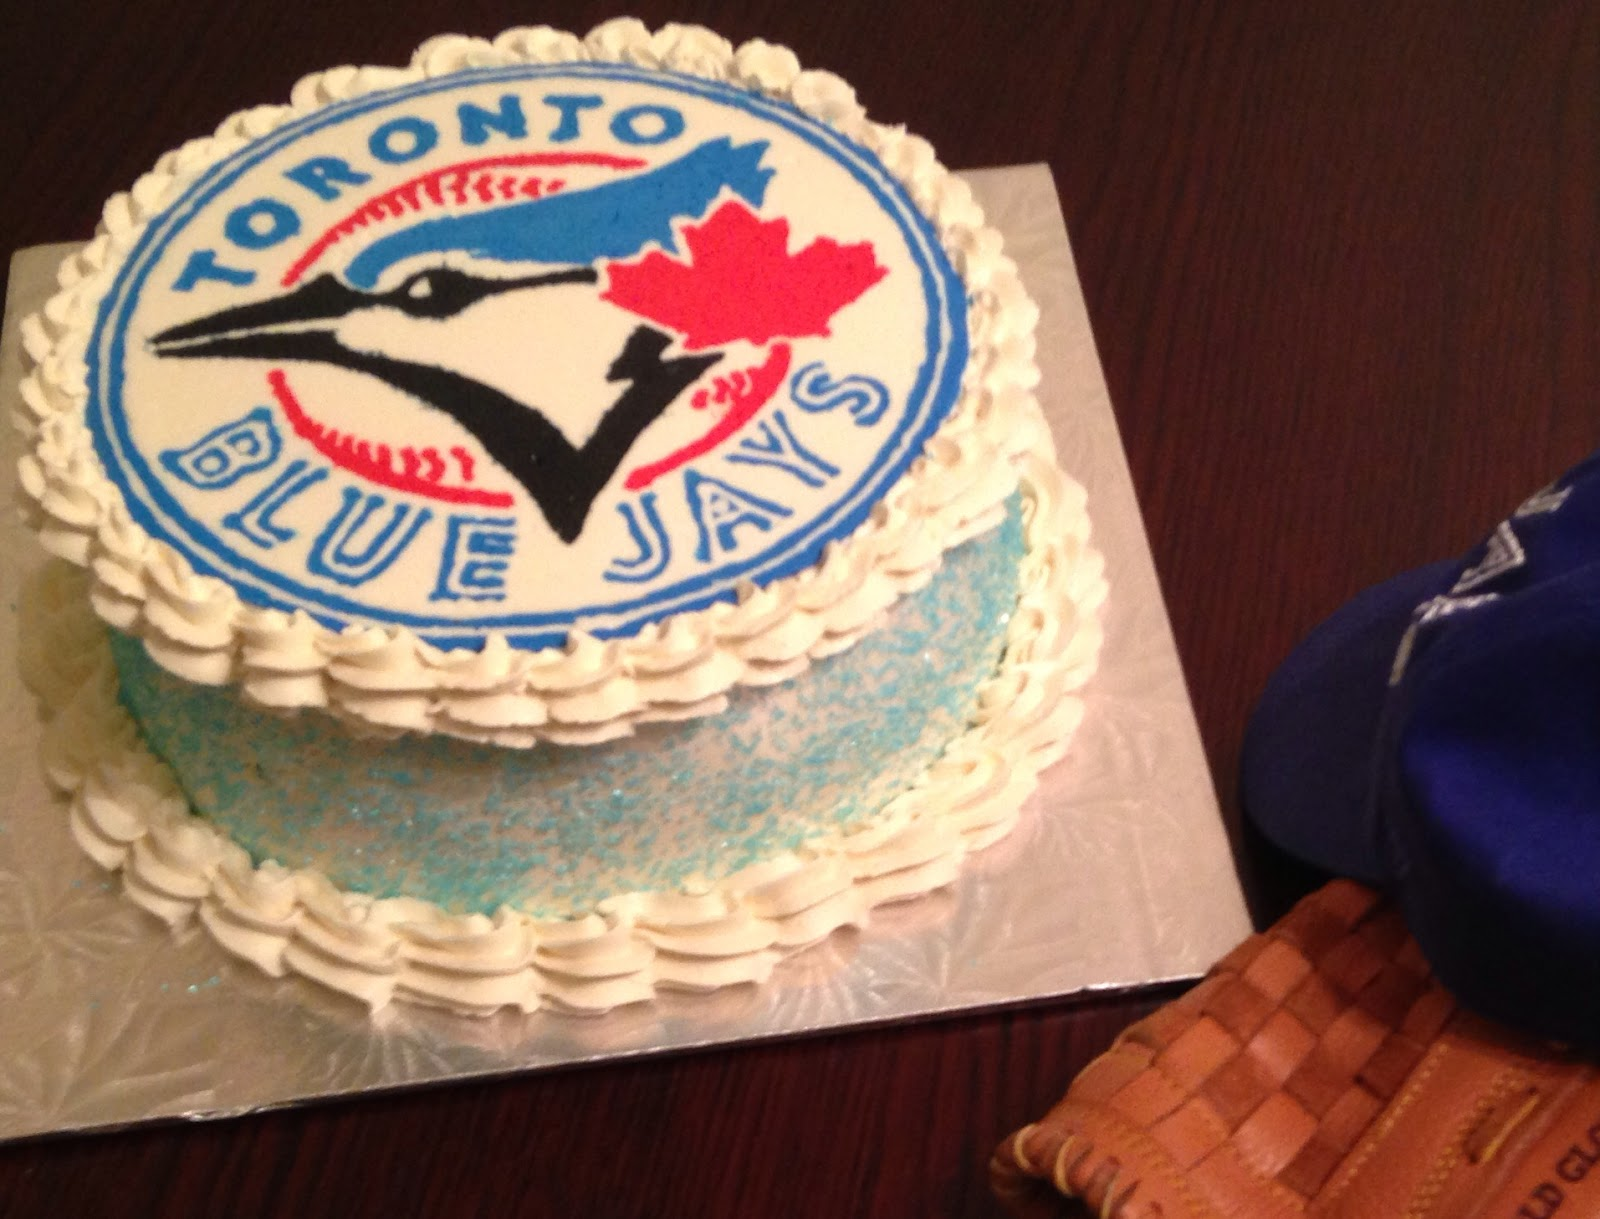 Crafting Baker: Toronto Blue Jays Birthday Cake